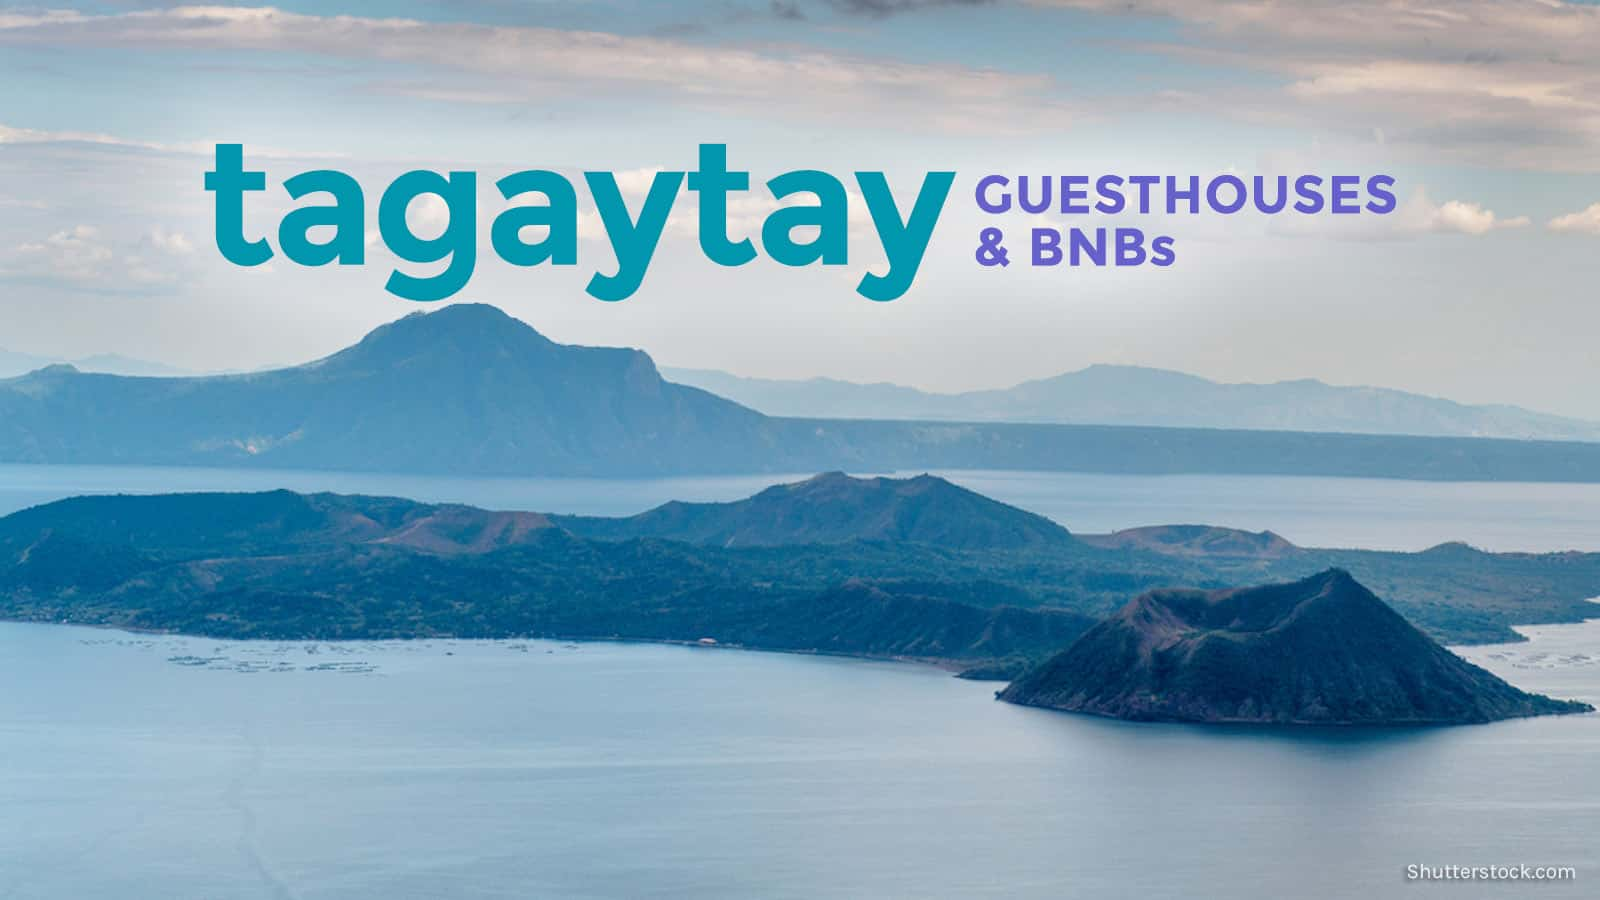 Top 12 Guest Houses and B&Bs in Tagaytay